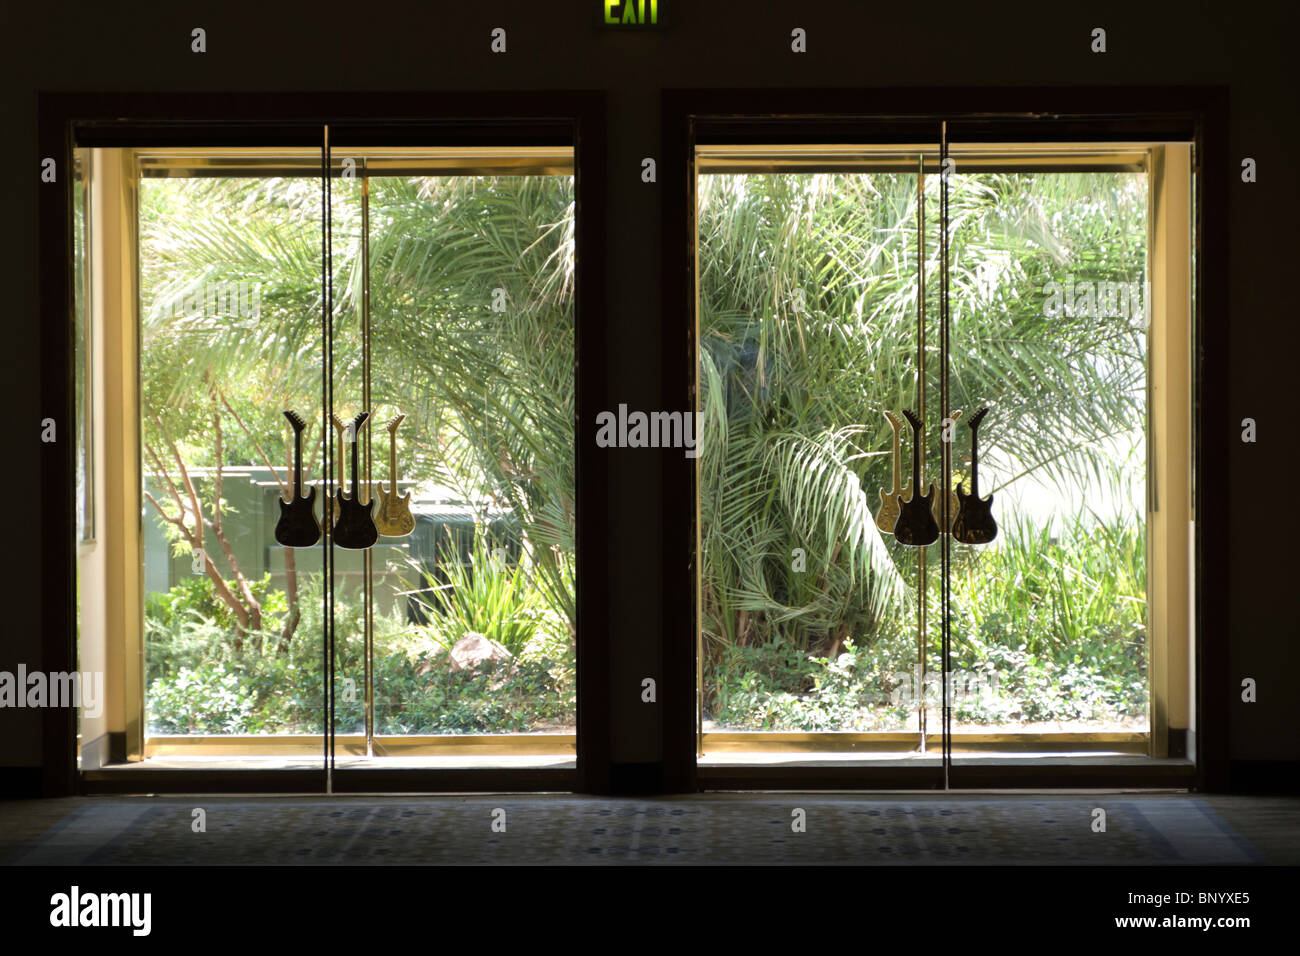 Las Vegas USA - Hard Rock Hotel glass doors to exit to garden with guitar shape handles. & Las Vegas USA - Hard Rock Hotel glass doors to exit to garden with ...